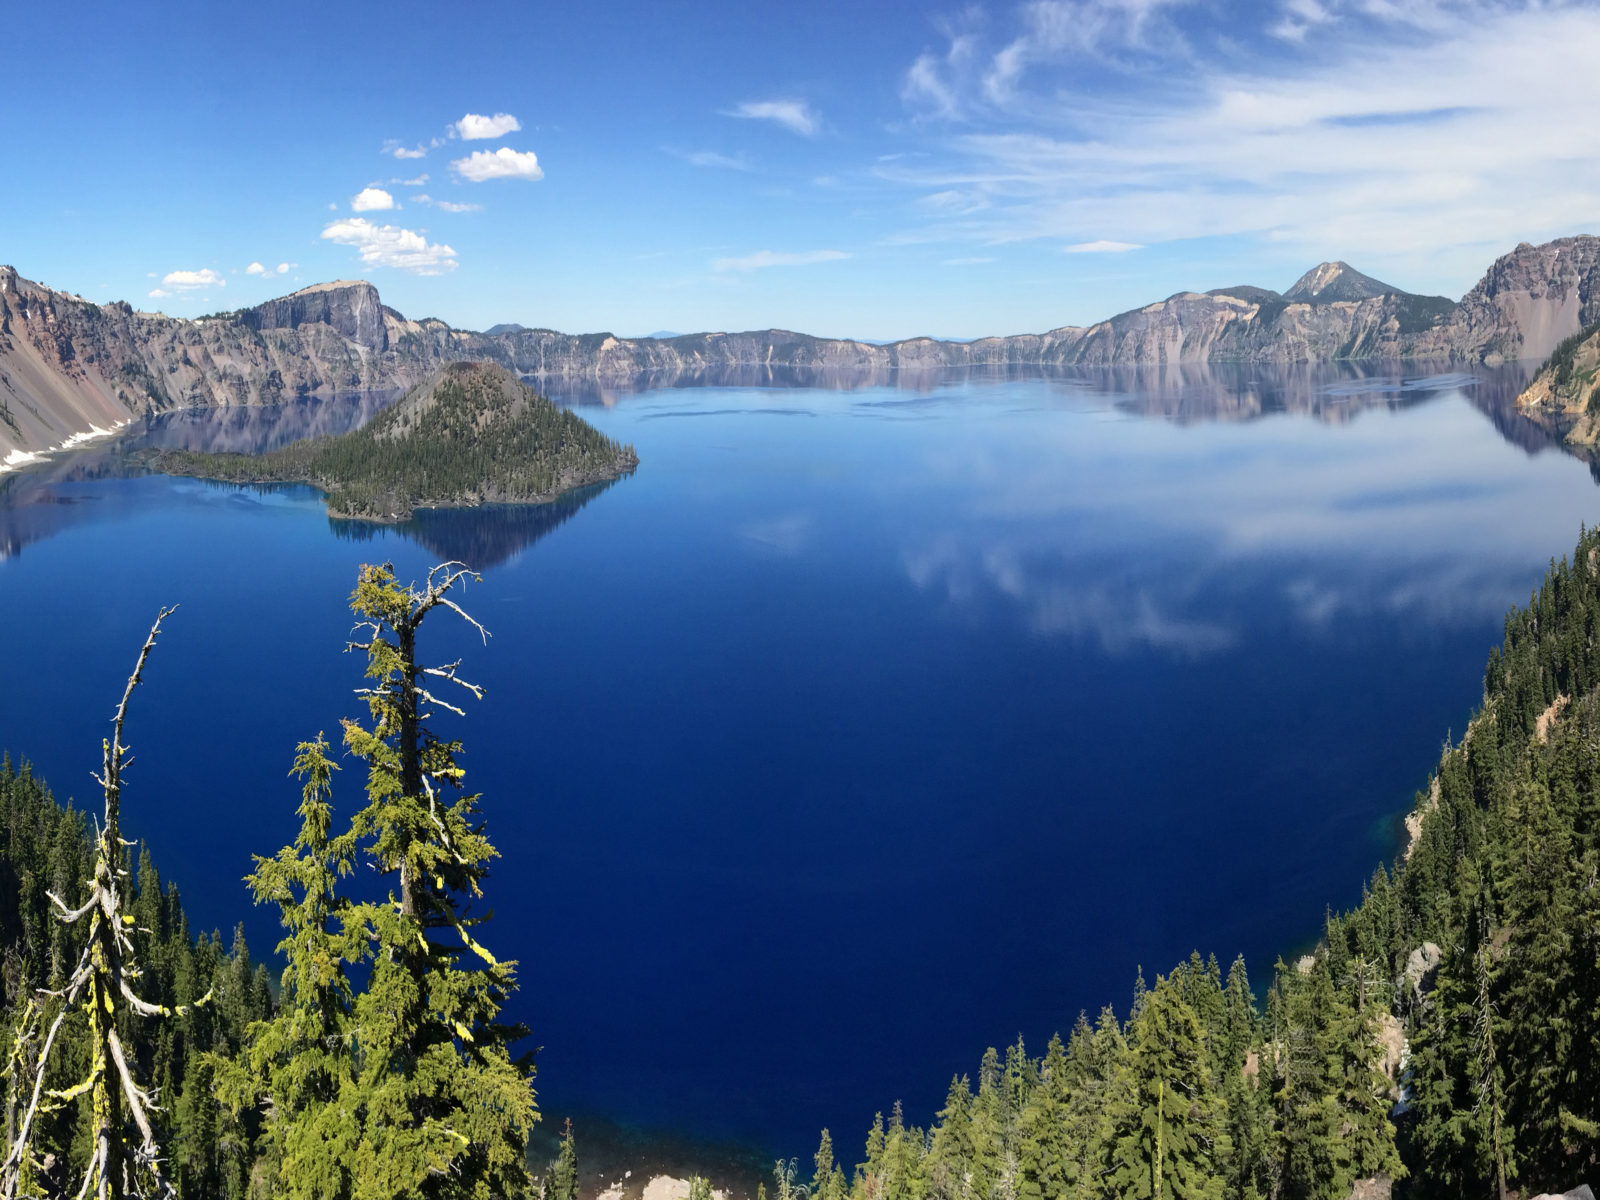 1024x768 Hd Wallpapers Free Download Crater Lake National Park Oregon Desktop Hd Wallpaper For